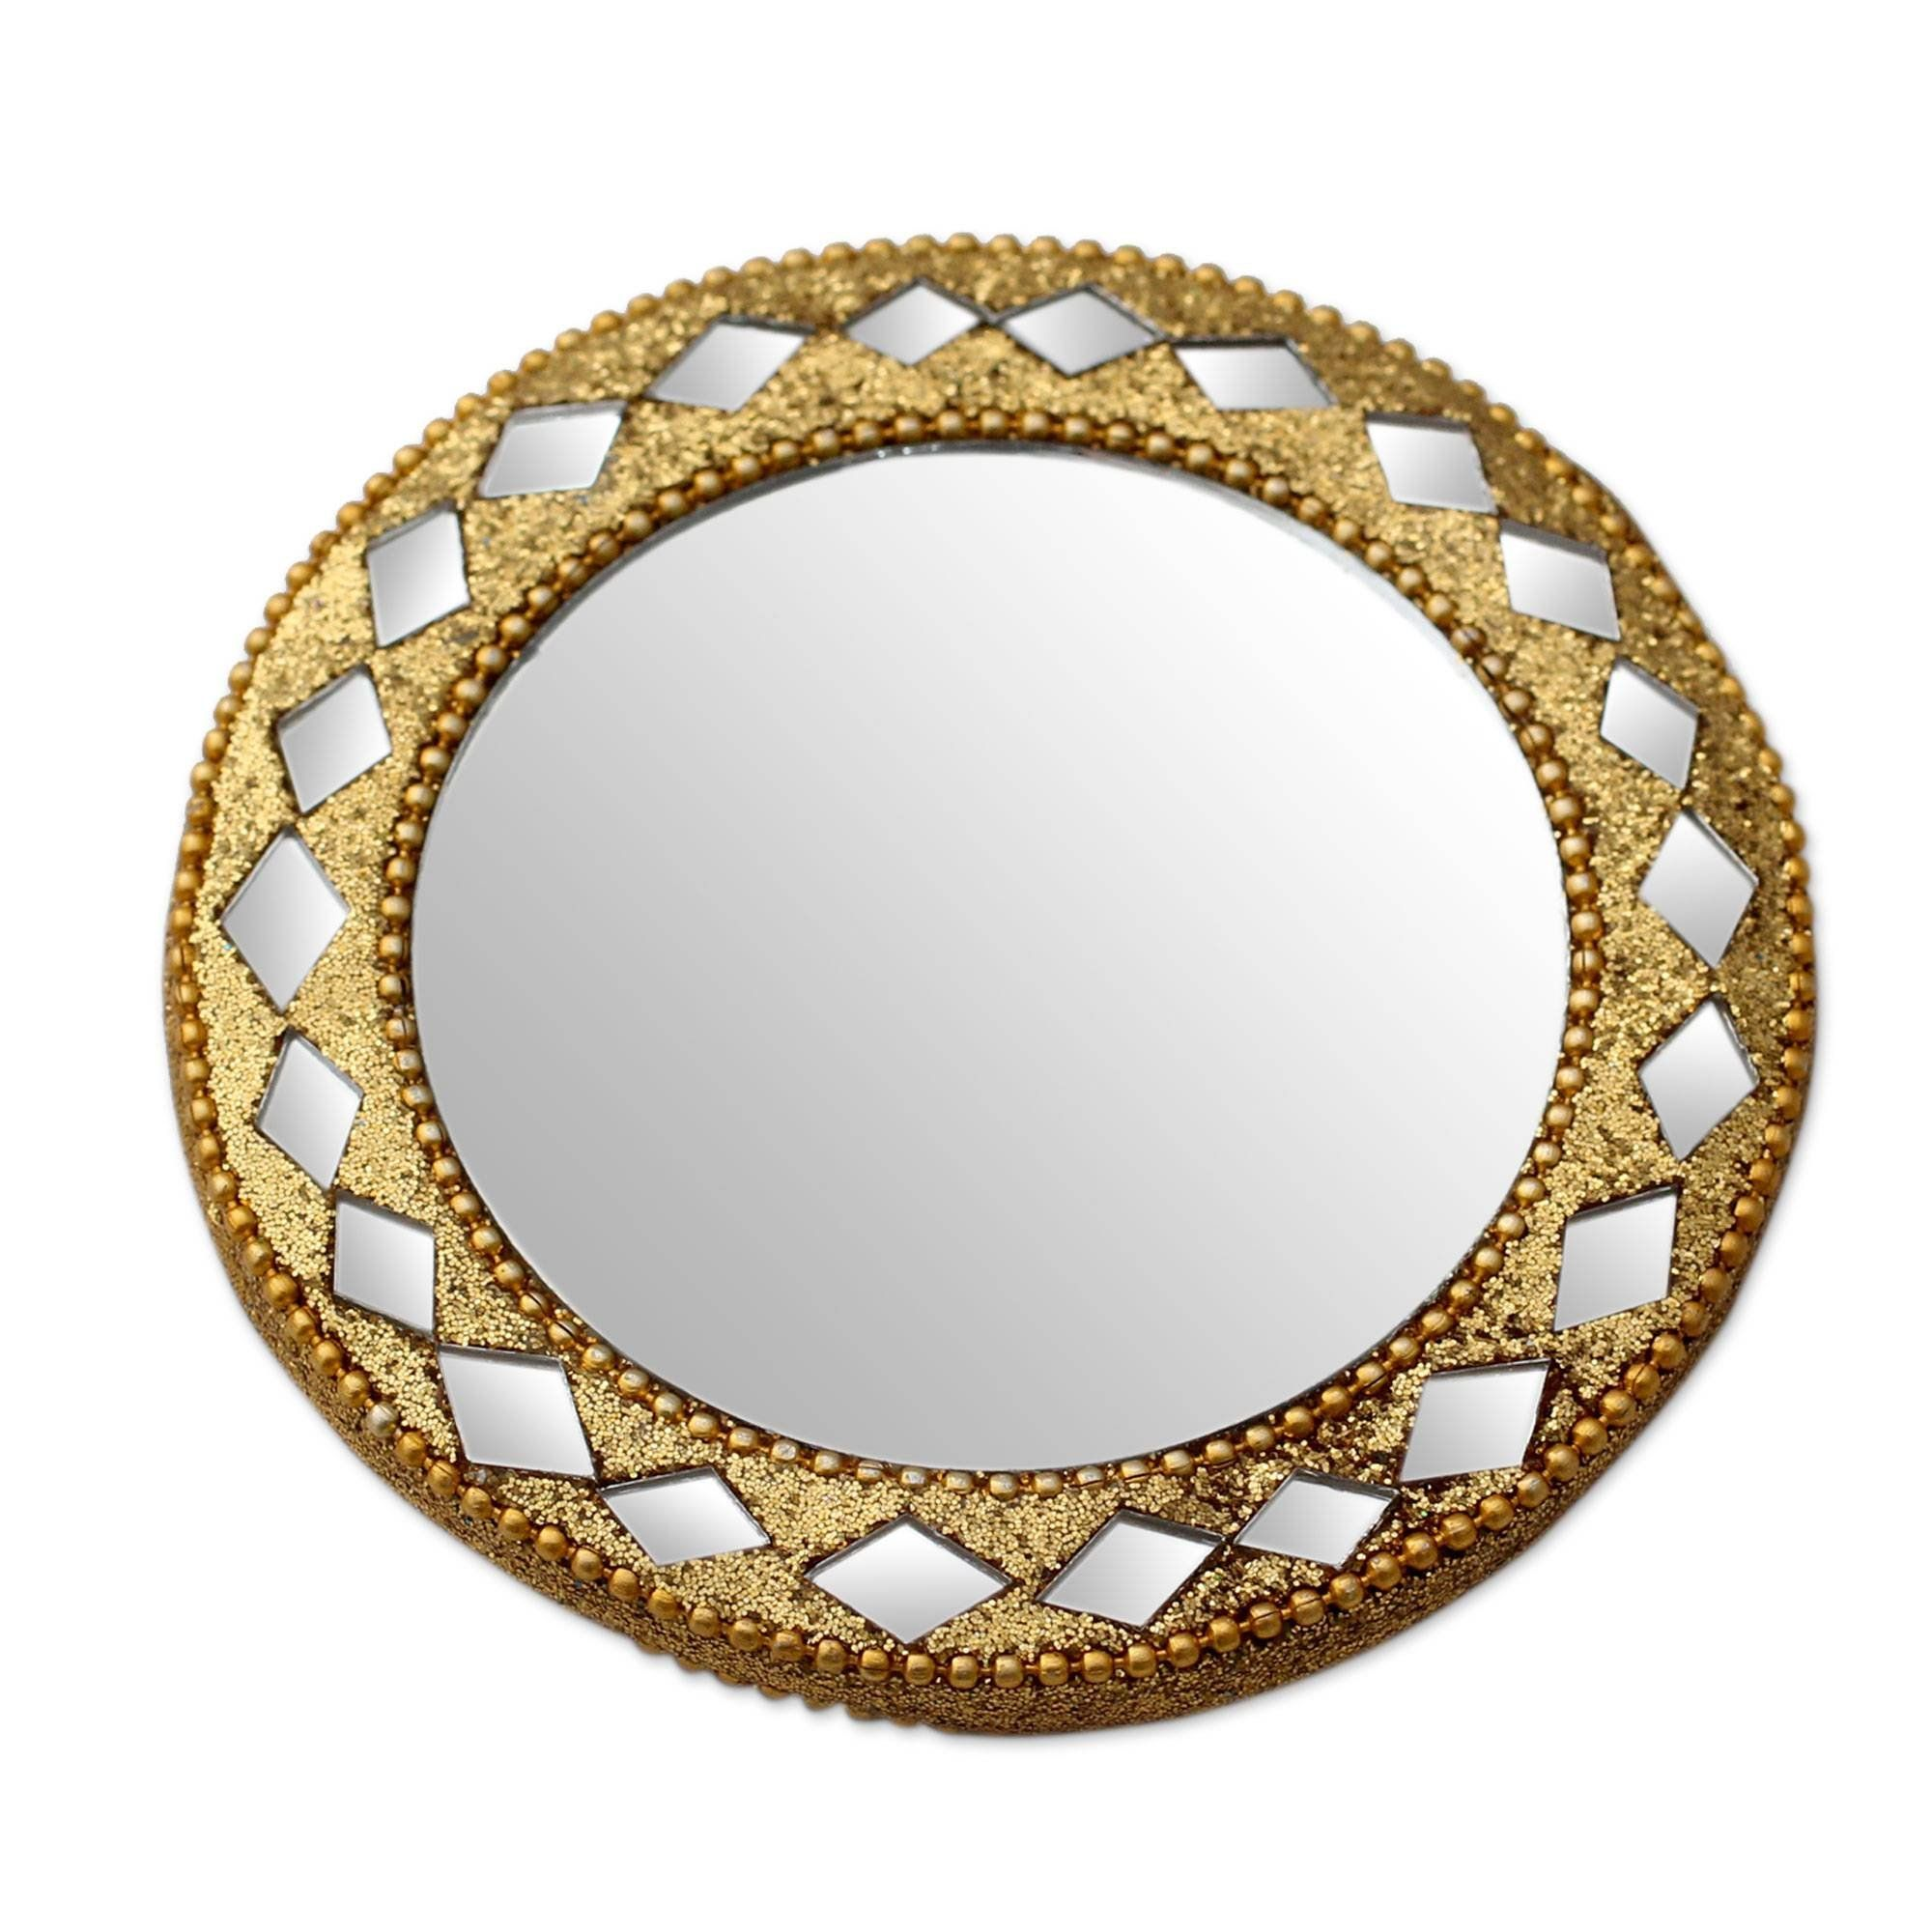 Novica Wood Wall Mounted Golden Charm Embellished Hand Mirror